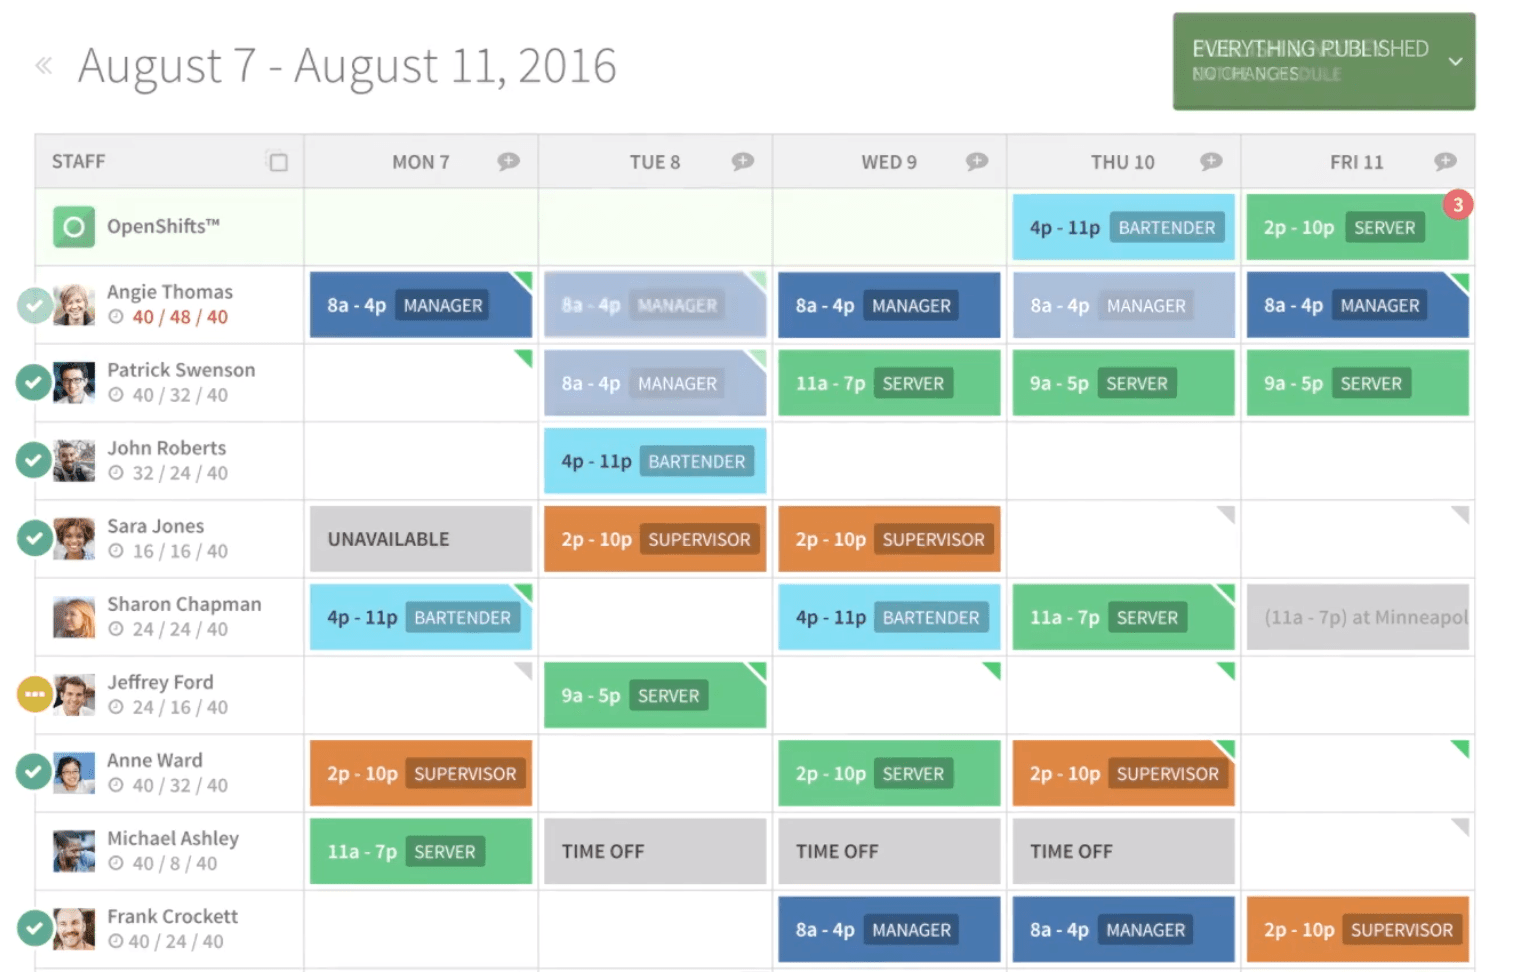 Automating employee scheduling with WhenIWork to help office management staff